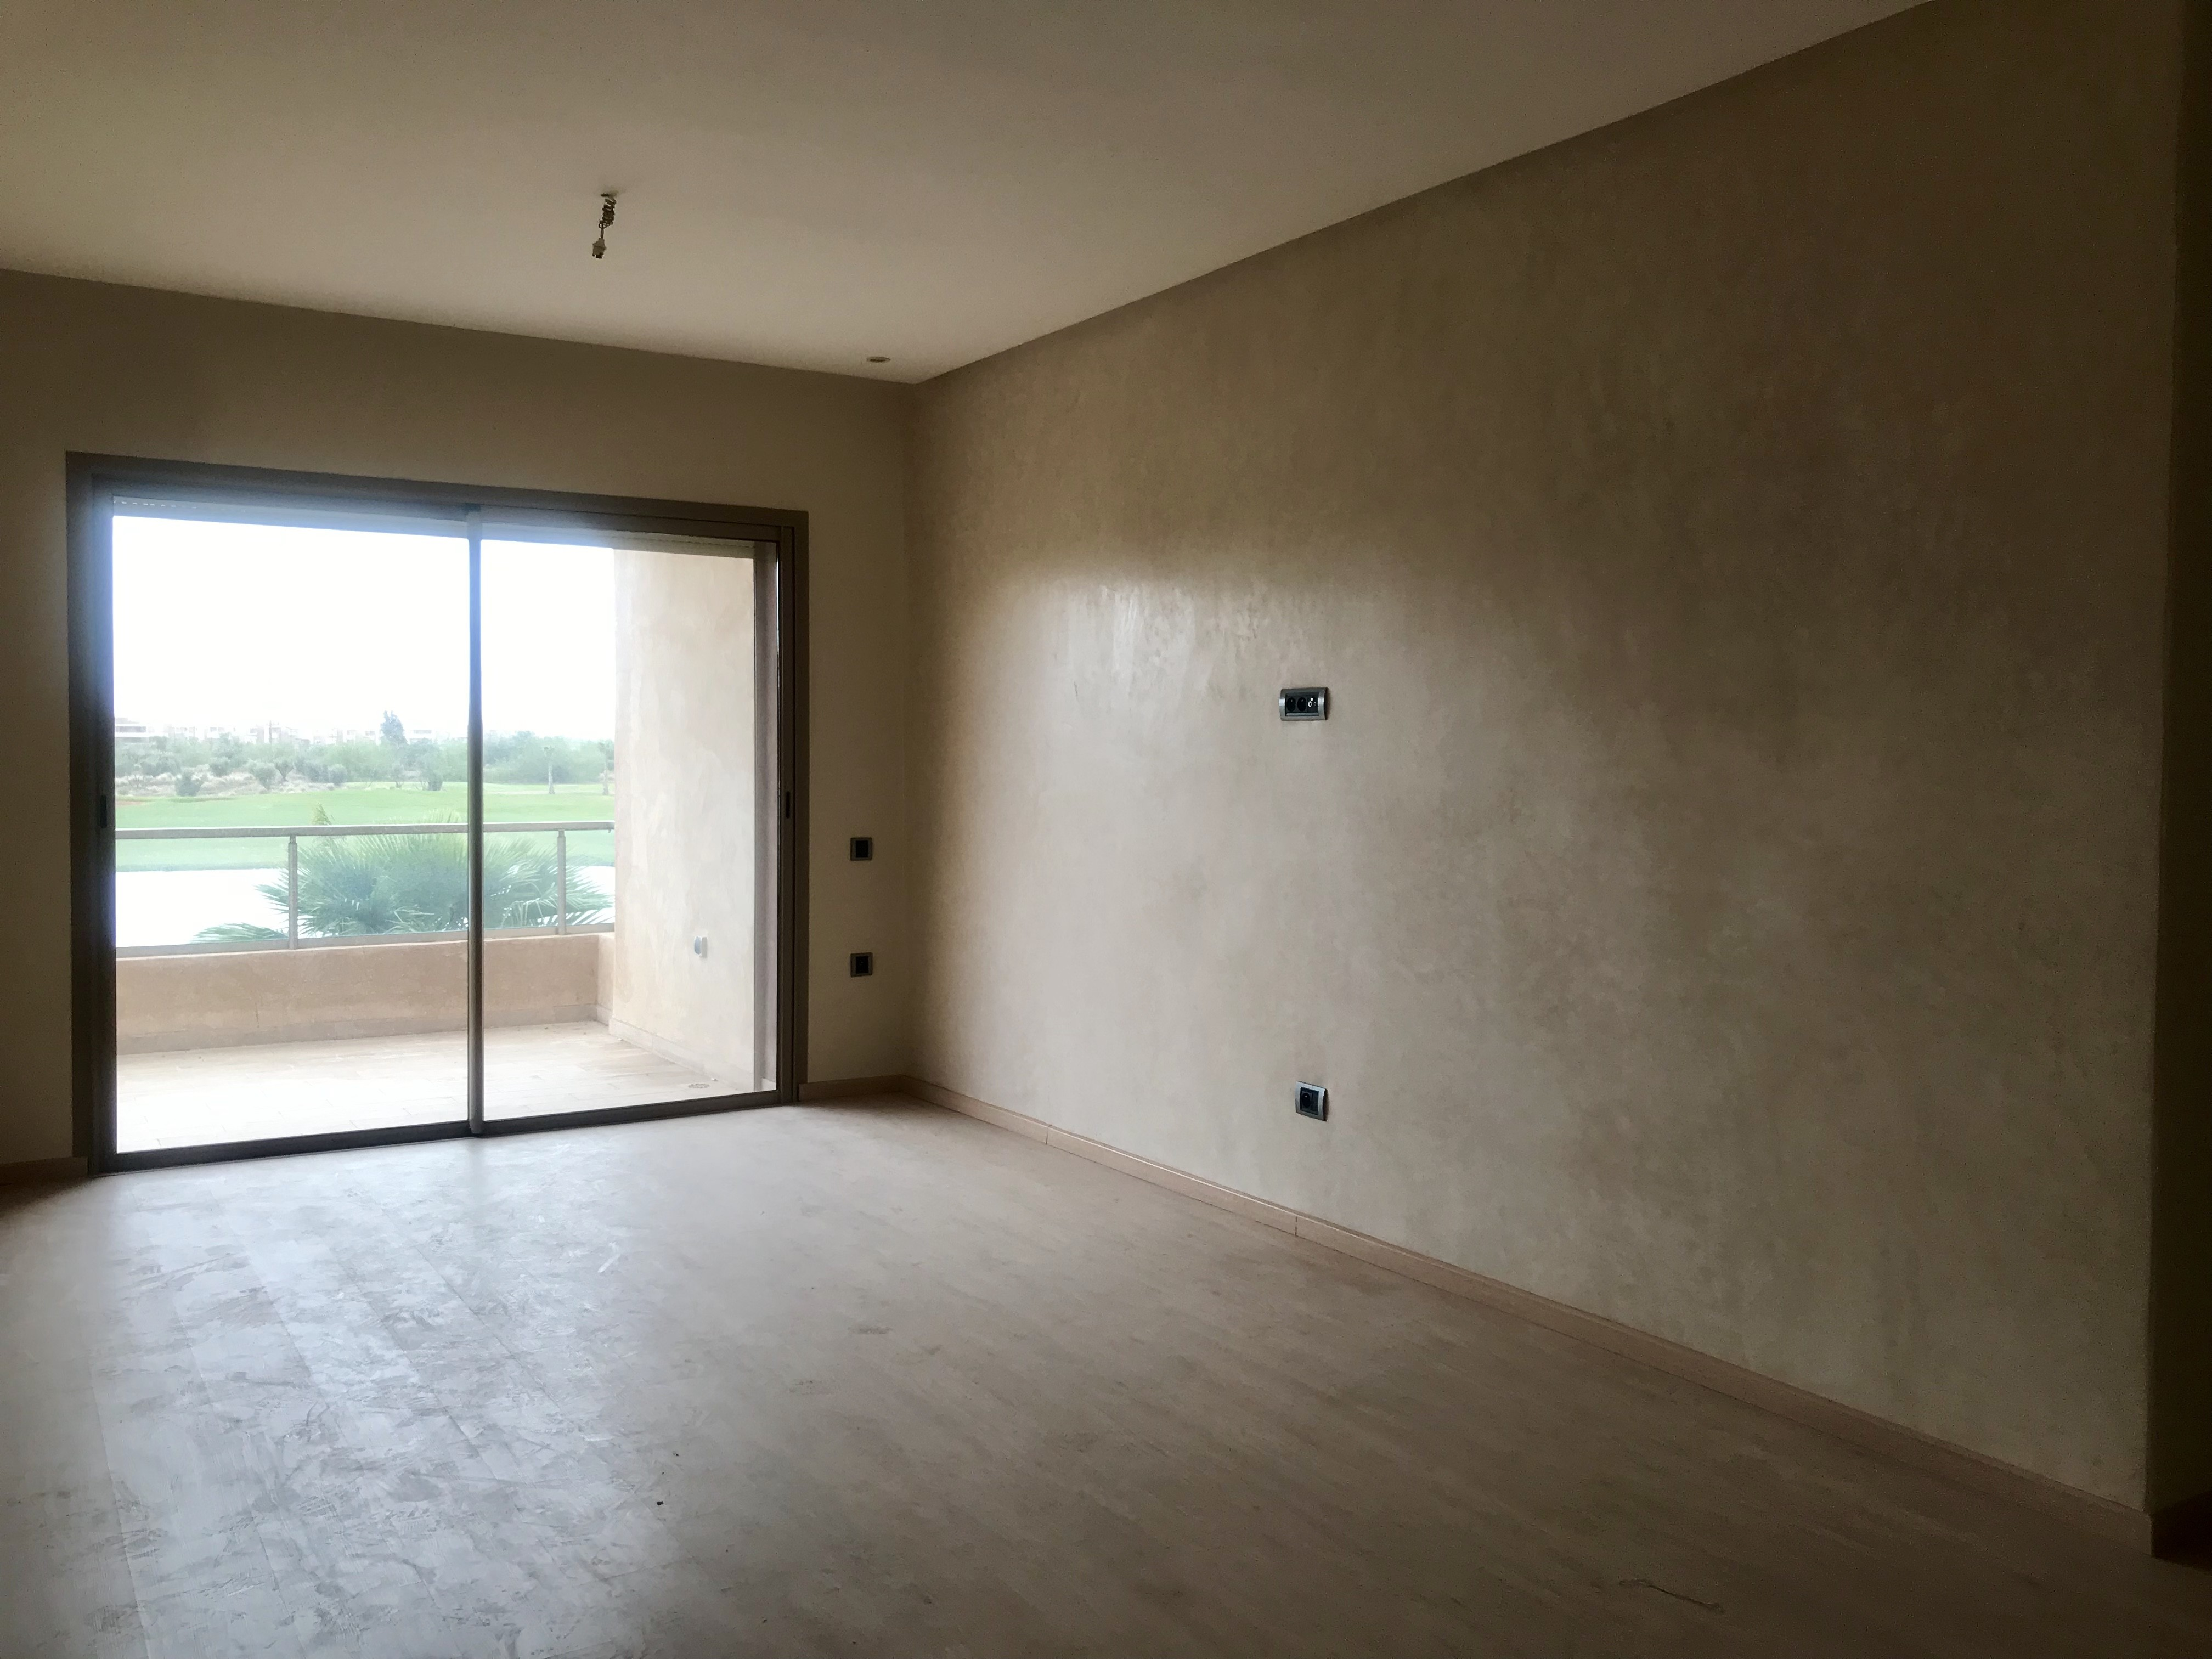 Vente <strong>Appartement</strong> Marrakech Agdal <strong>105 m2</strong>